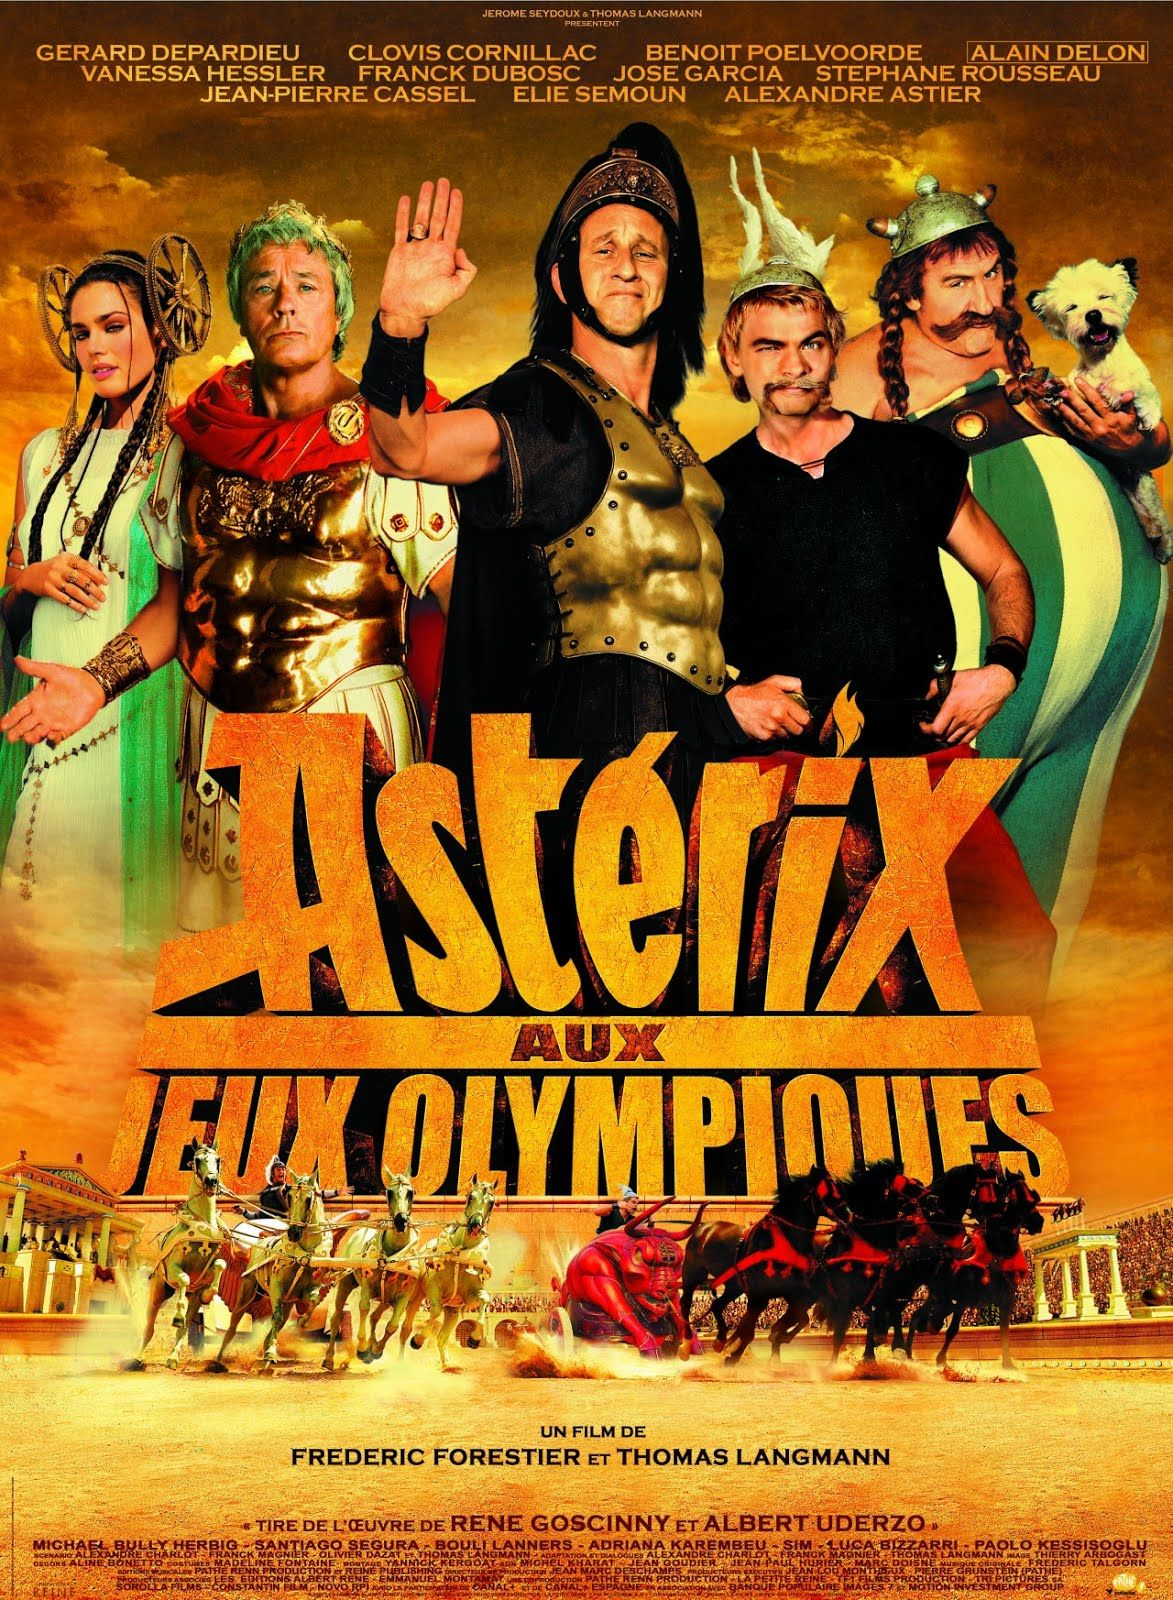 Easily Forgotten Asterix At The Olympic Games Astérix Aux Jeux Olympiques By Frédéric Forestier And Thomas Langmann 2008 Olympic Games French Movies Film